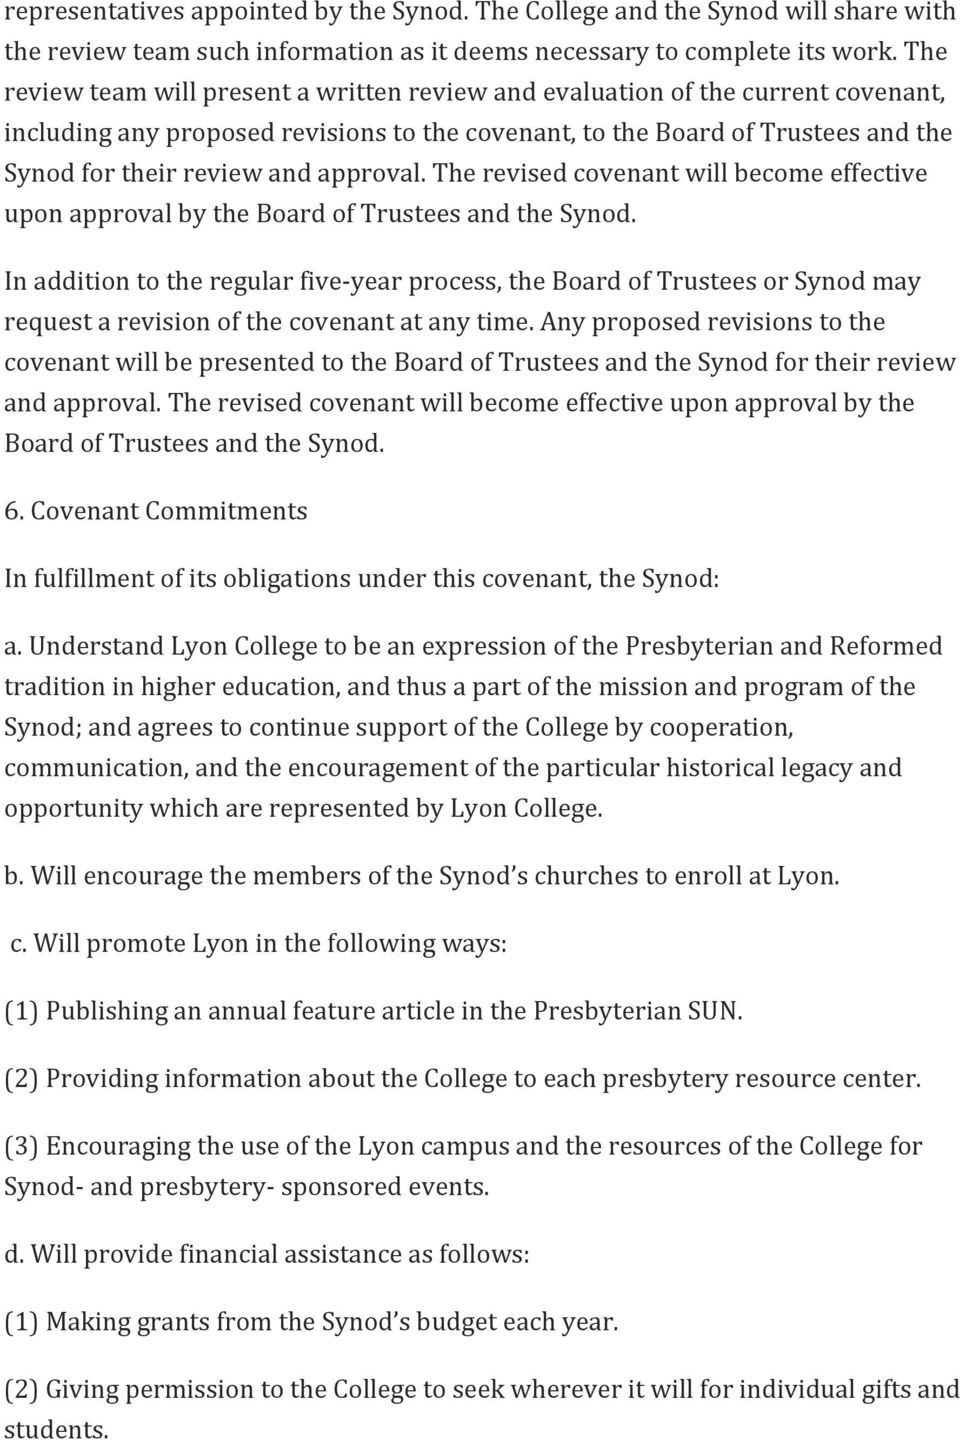 approval. The revised covenant will become effective upon approval by the Board of Trustees and the Synod.